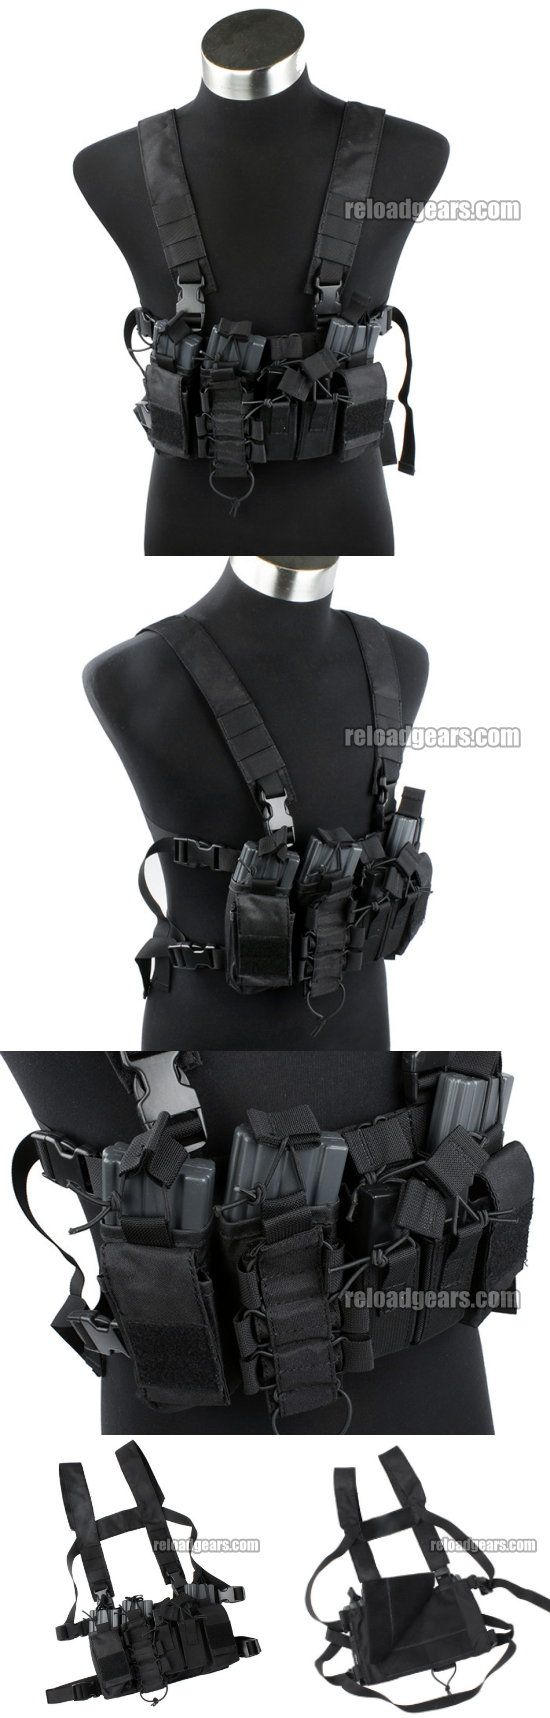 TMC D-Mittsu D3 Tactical Chest Rig (Black) [TMC2077-BK] - $49.99 : Reload Gears, Combat Gears Airsoft Parts and RC 1 10 Car Parts